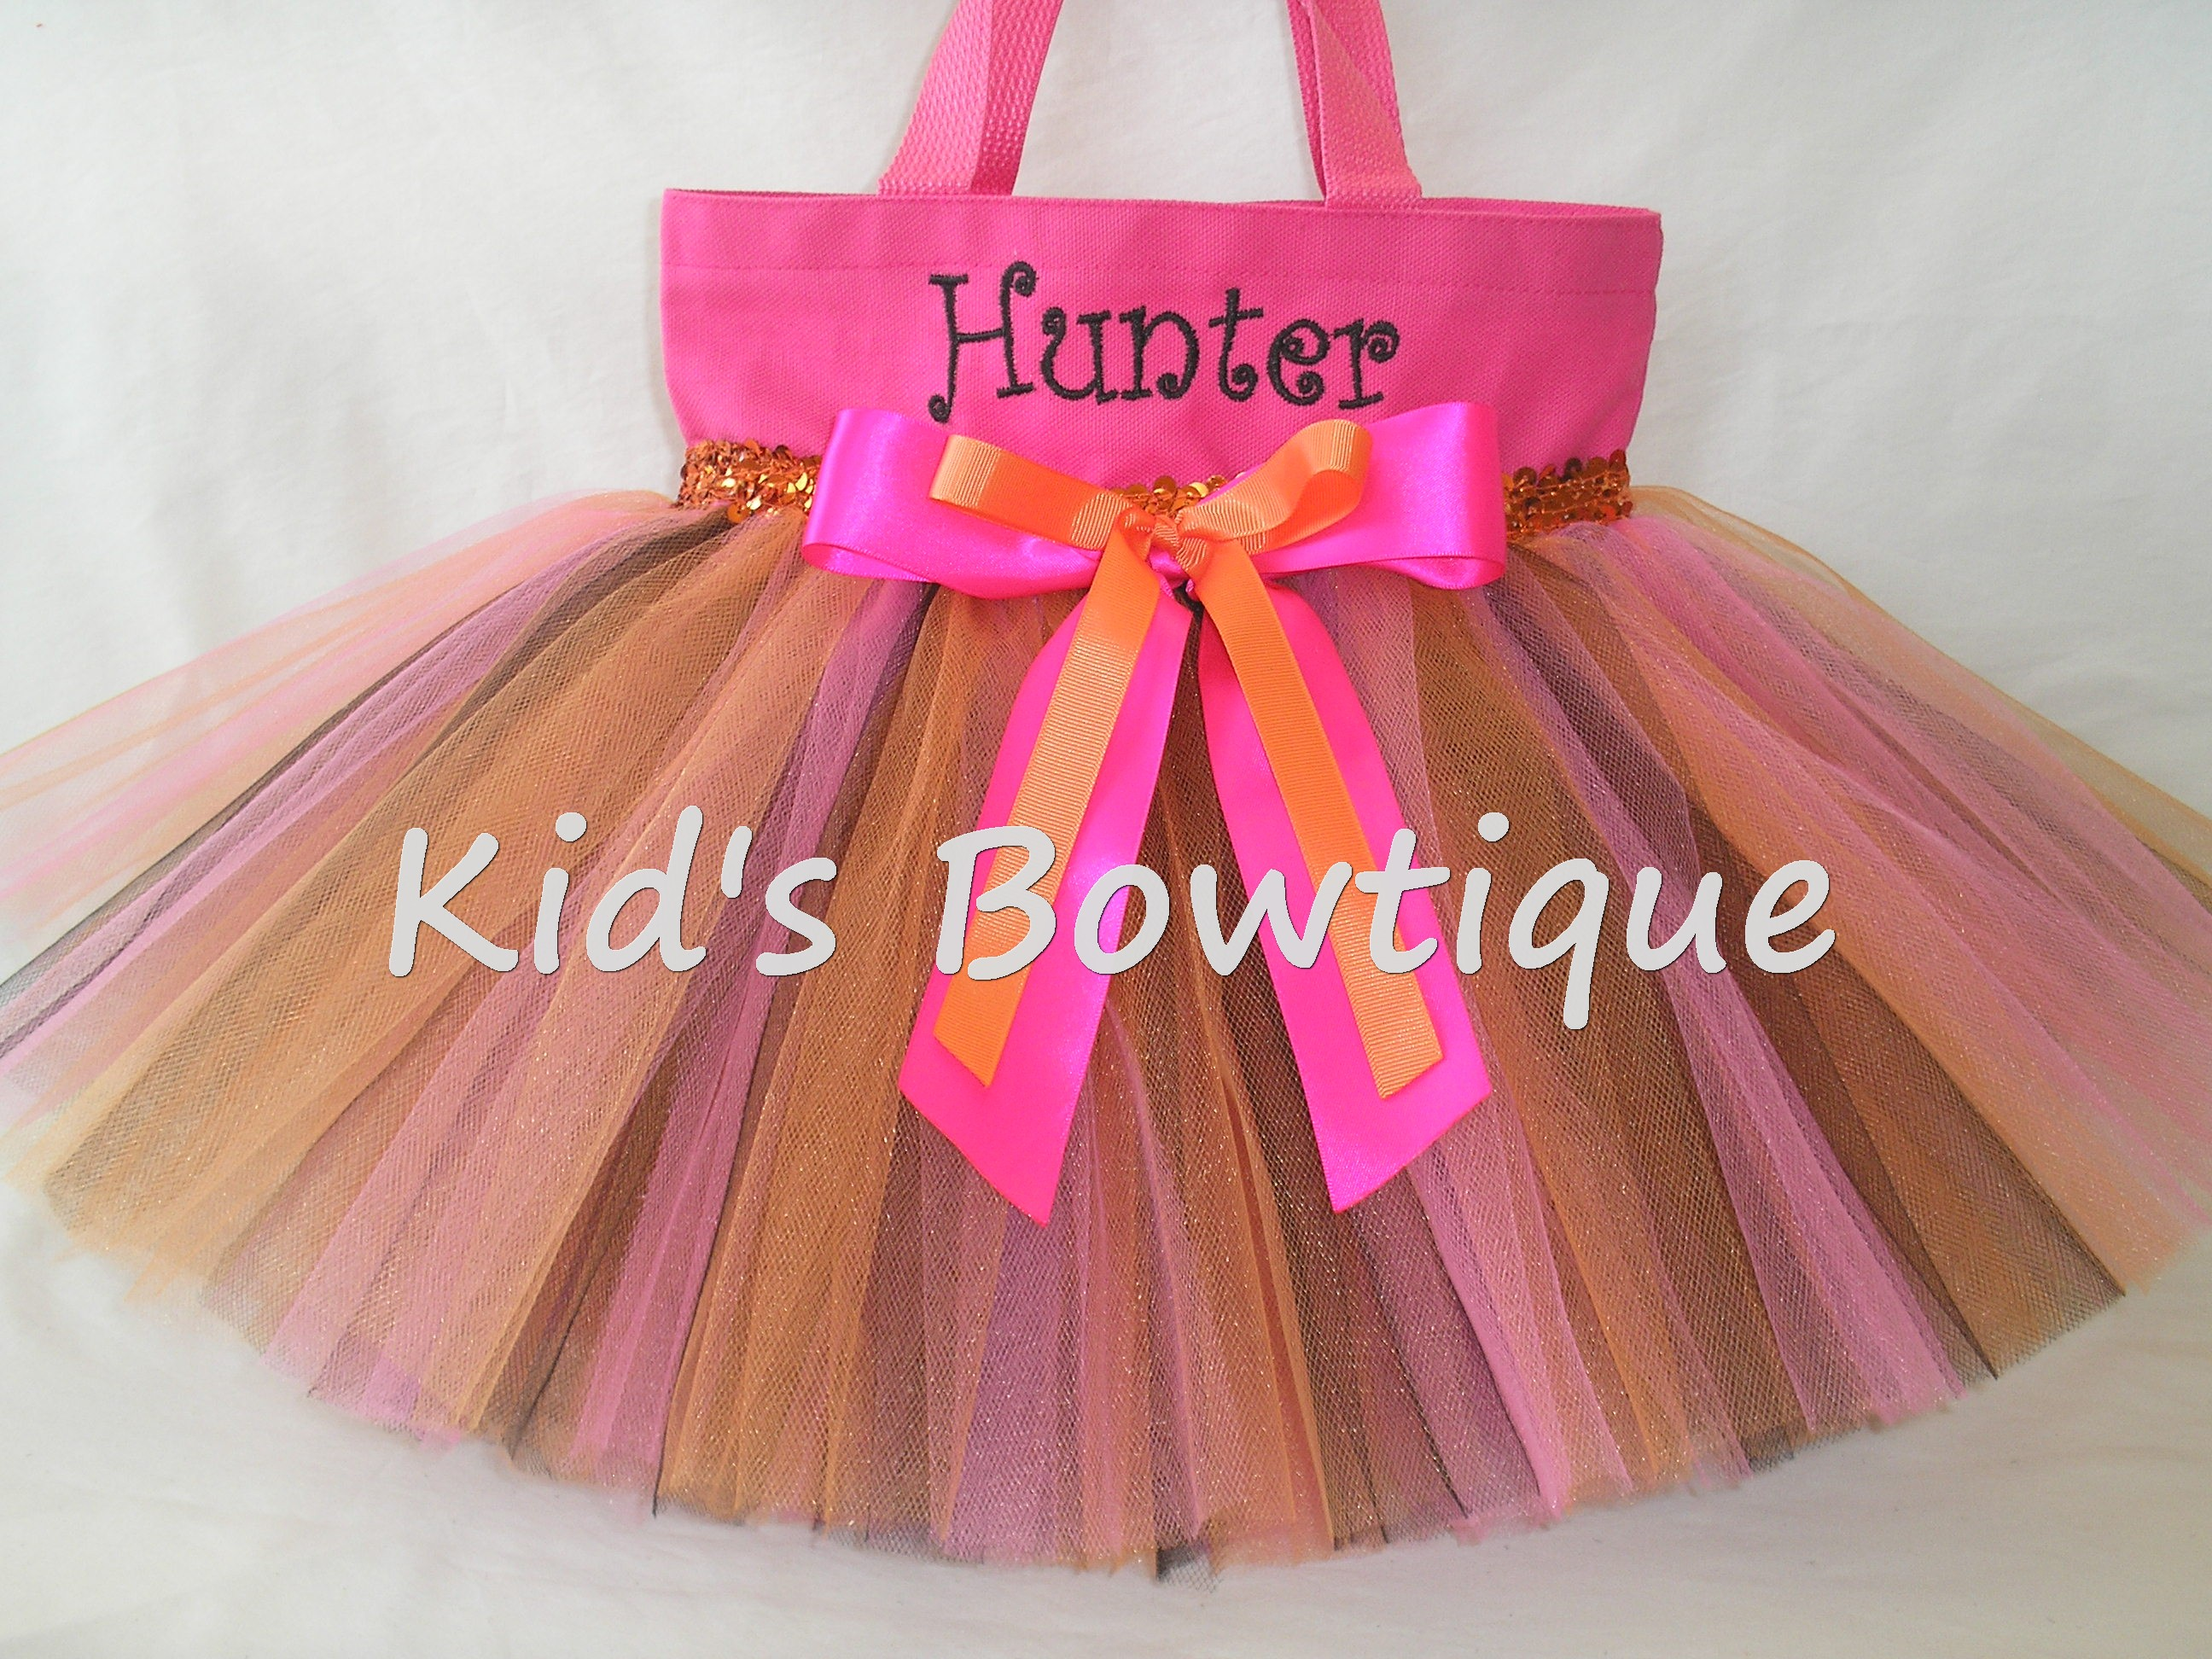 Monogrammed Tutu Tote Bag - ttb44 Pink Orange Black Butterfly